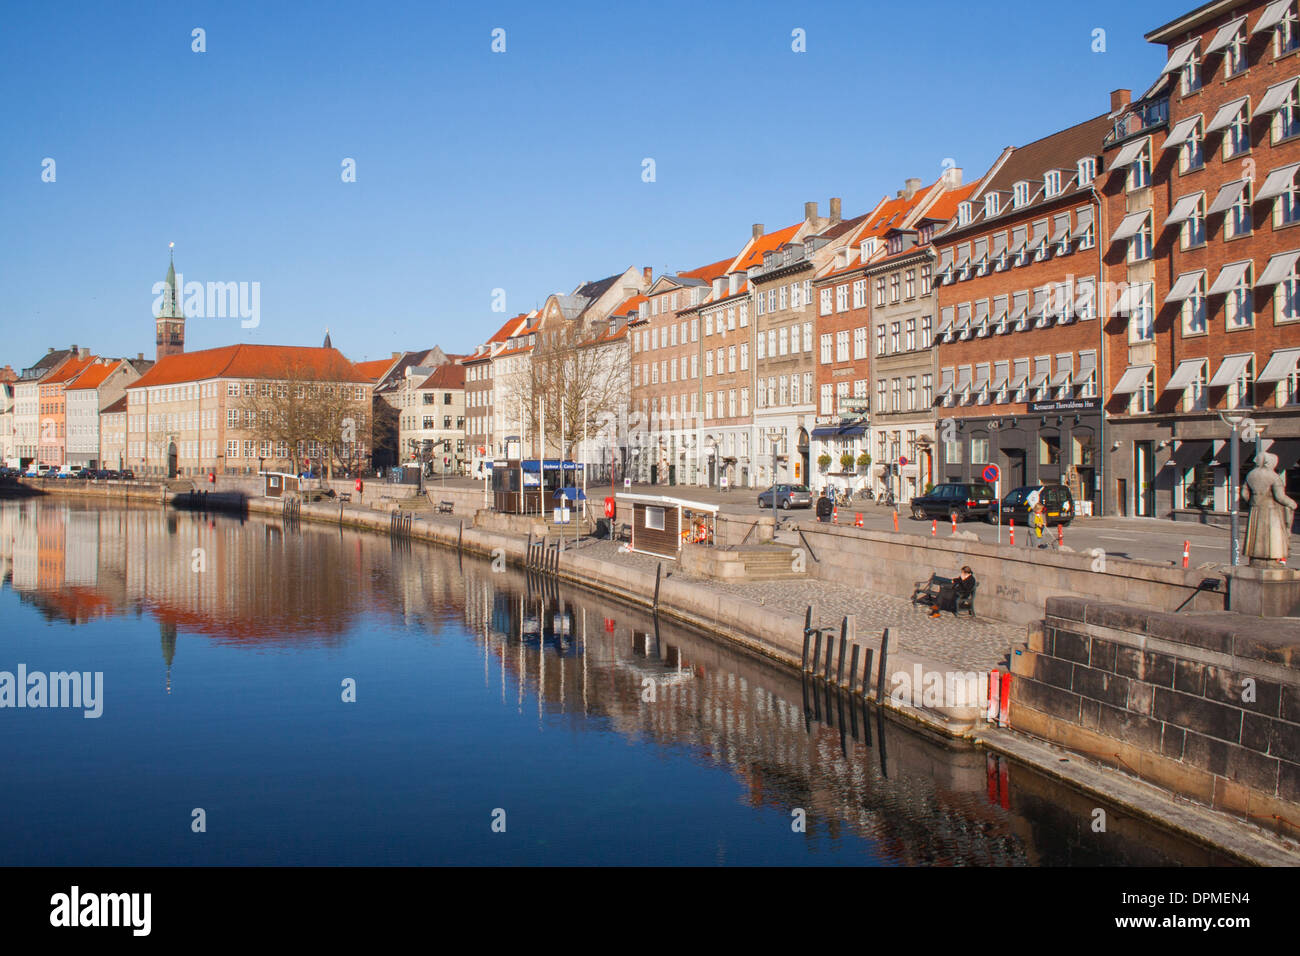 Frederiksholms Canal and City Hall tower in early morning, Copenhagen Denmark - Stock Image